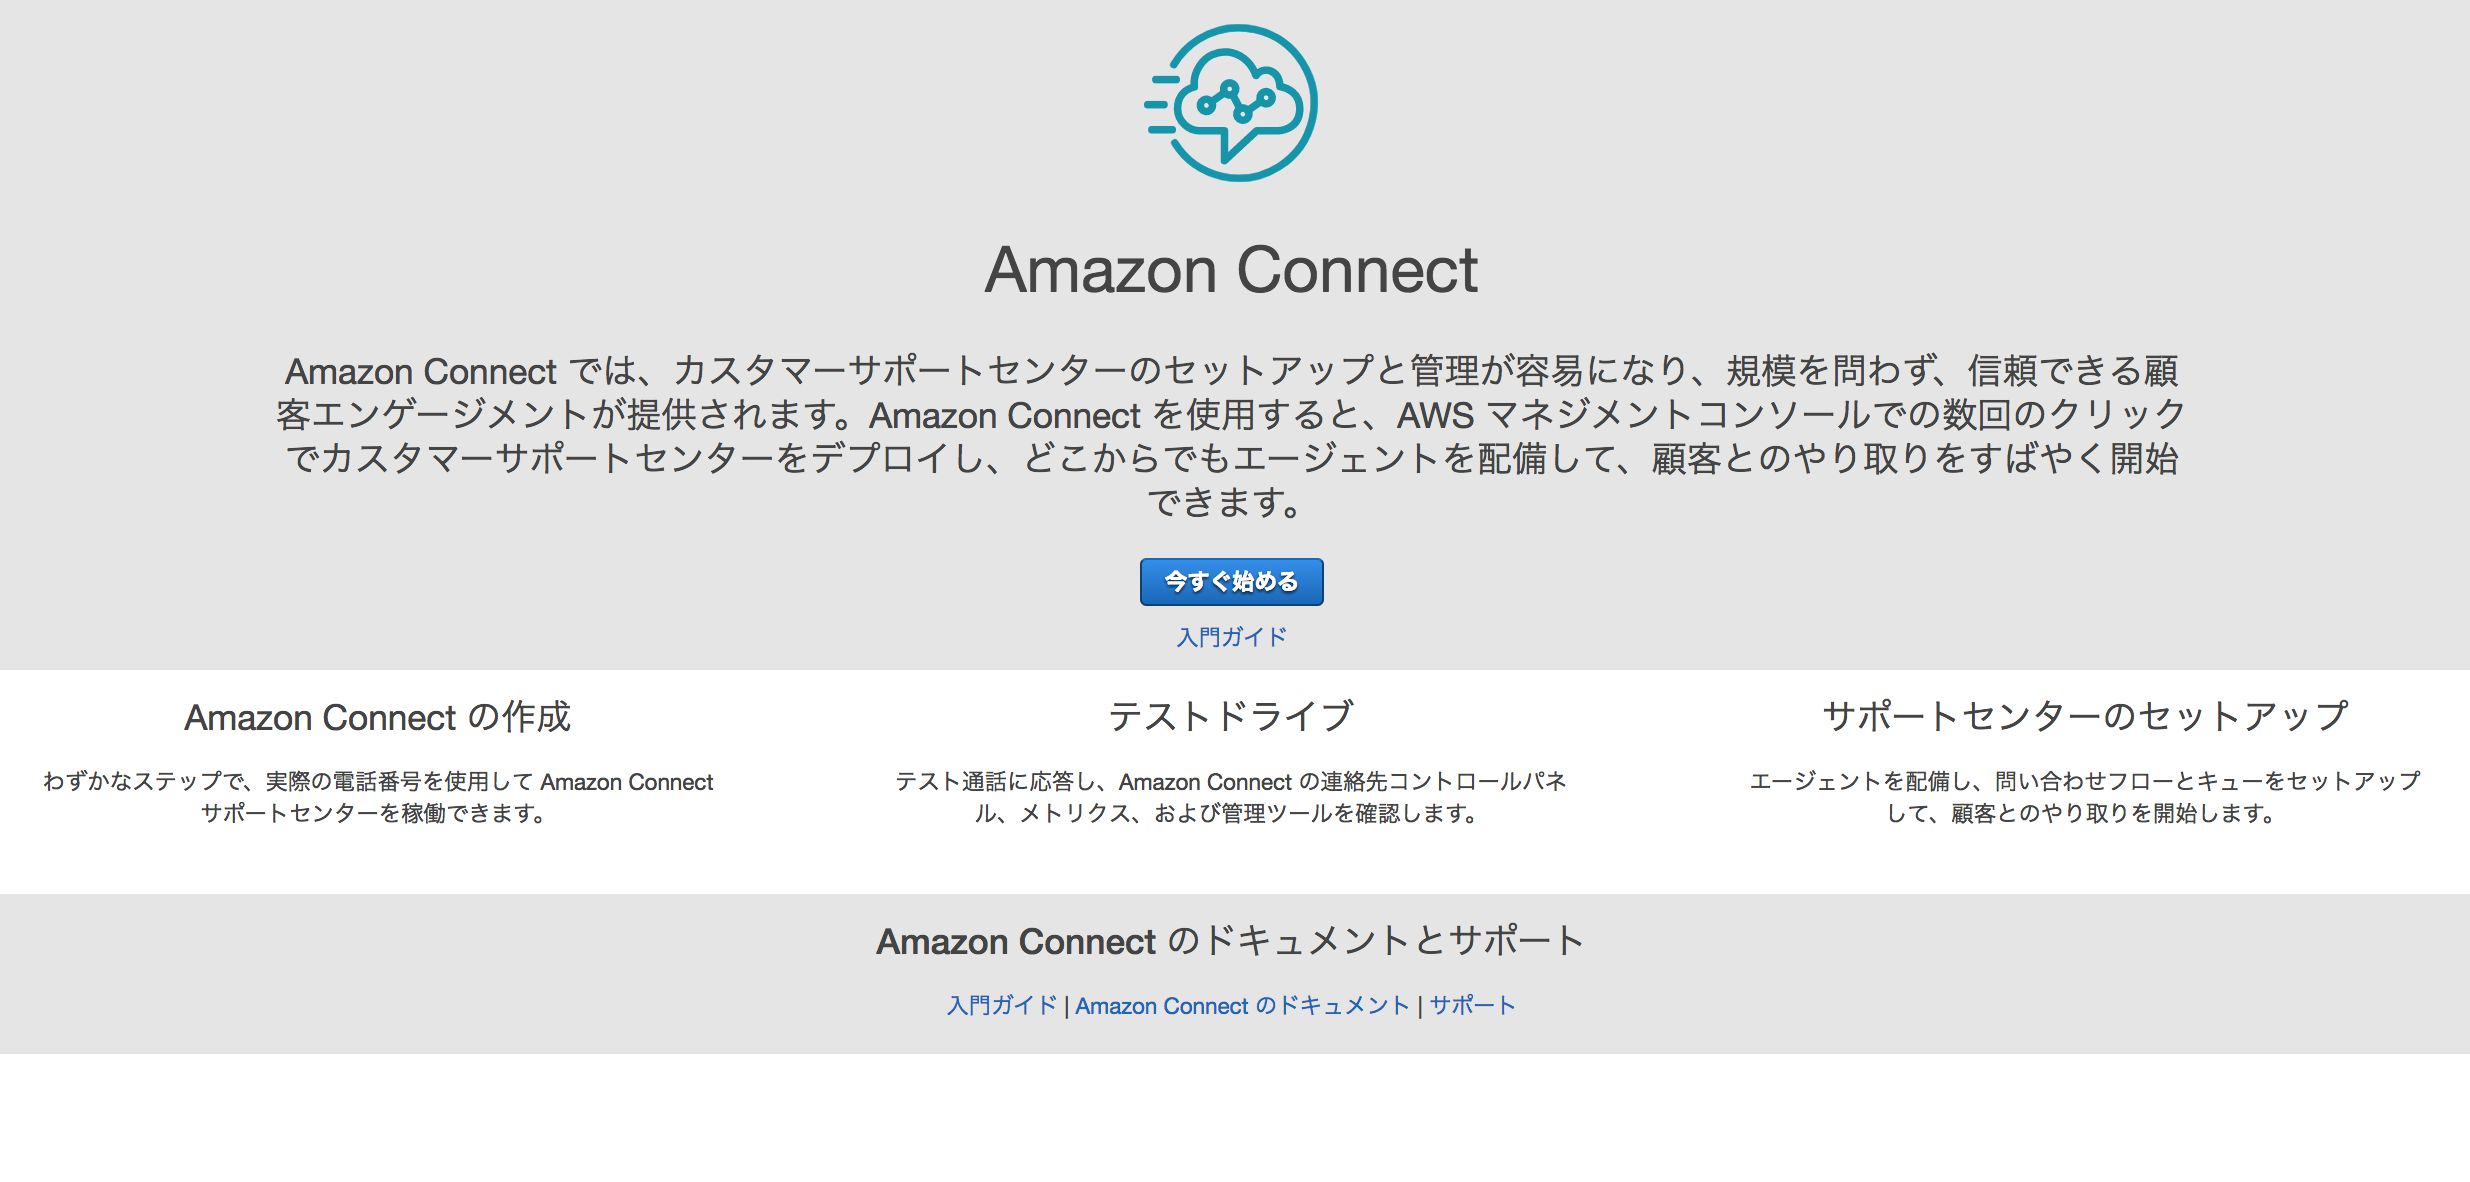 Amazon_Connect_2